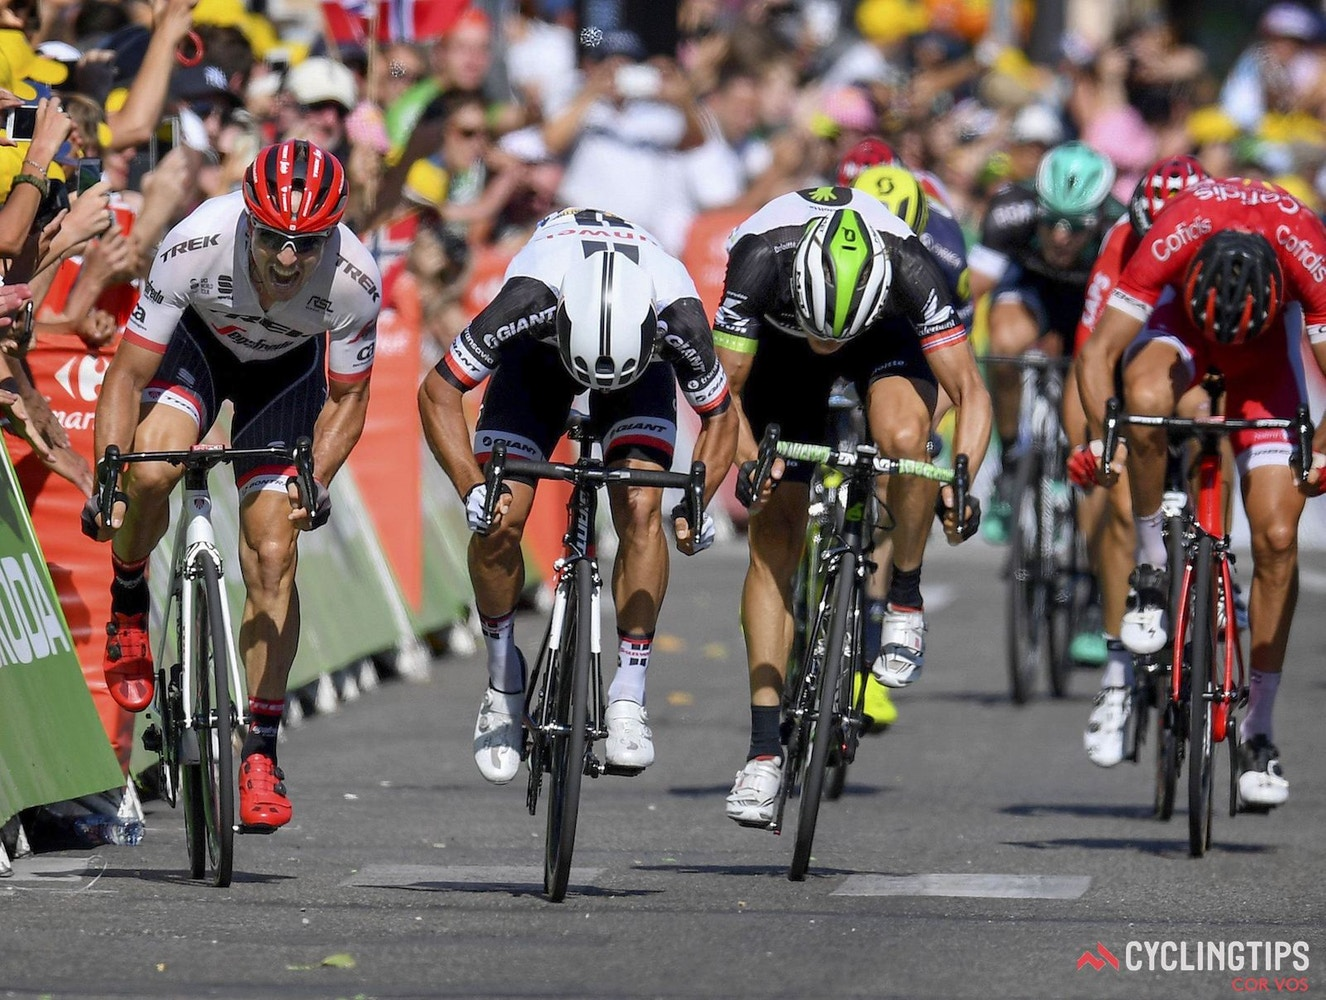 Tour de France 2017: Stage Sixteen Race Recap